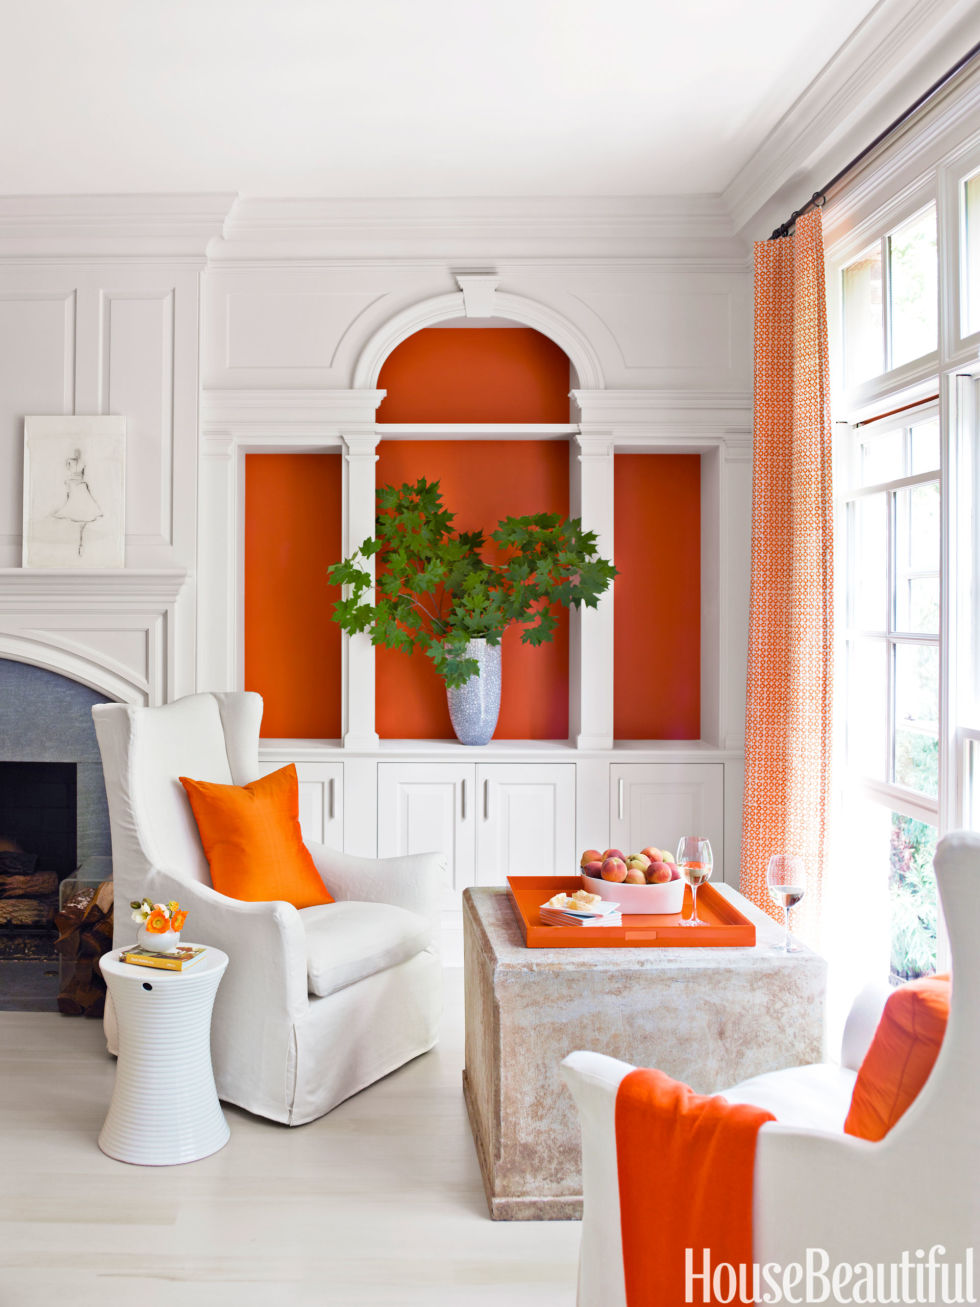 White Furniture Living Room Decorating Orange And Black Rooms Orange And Black Decorating Ideas